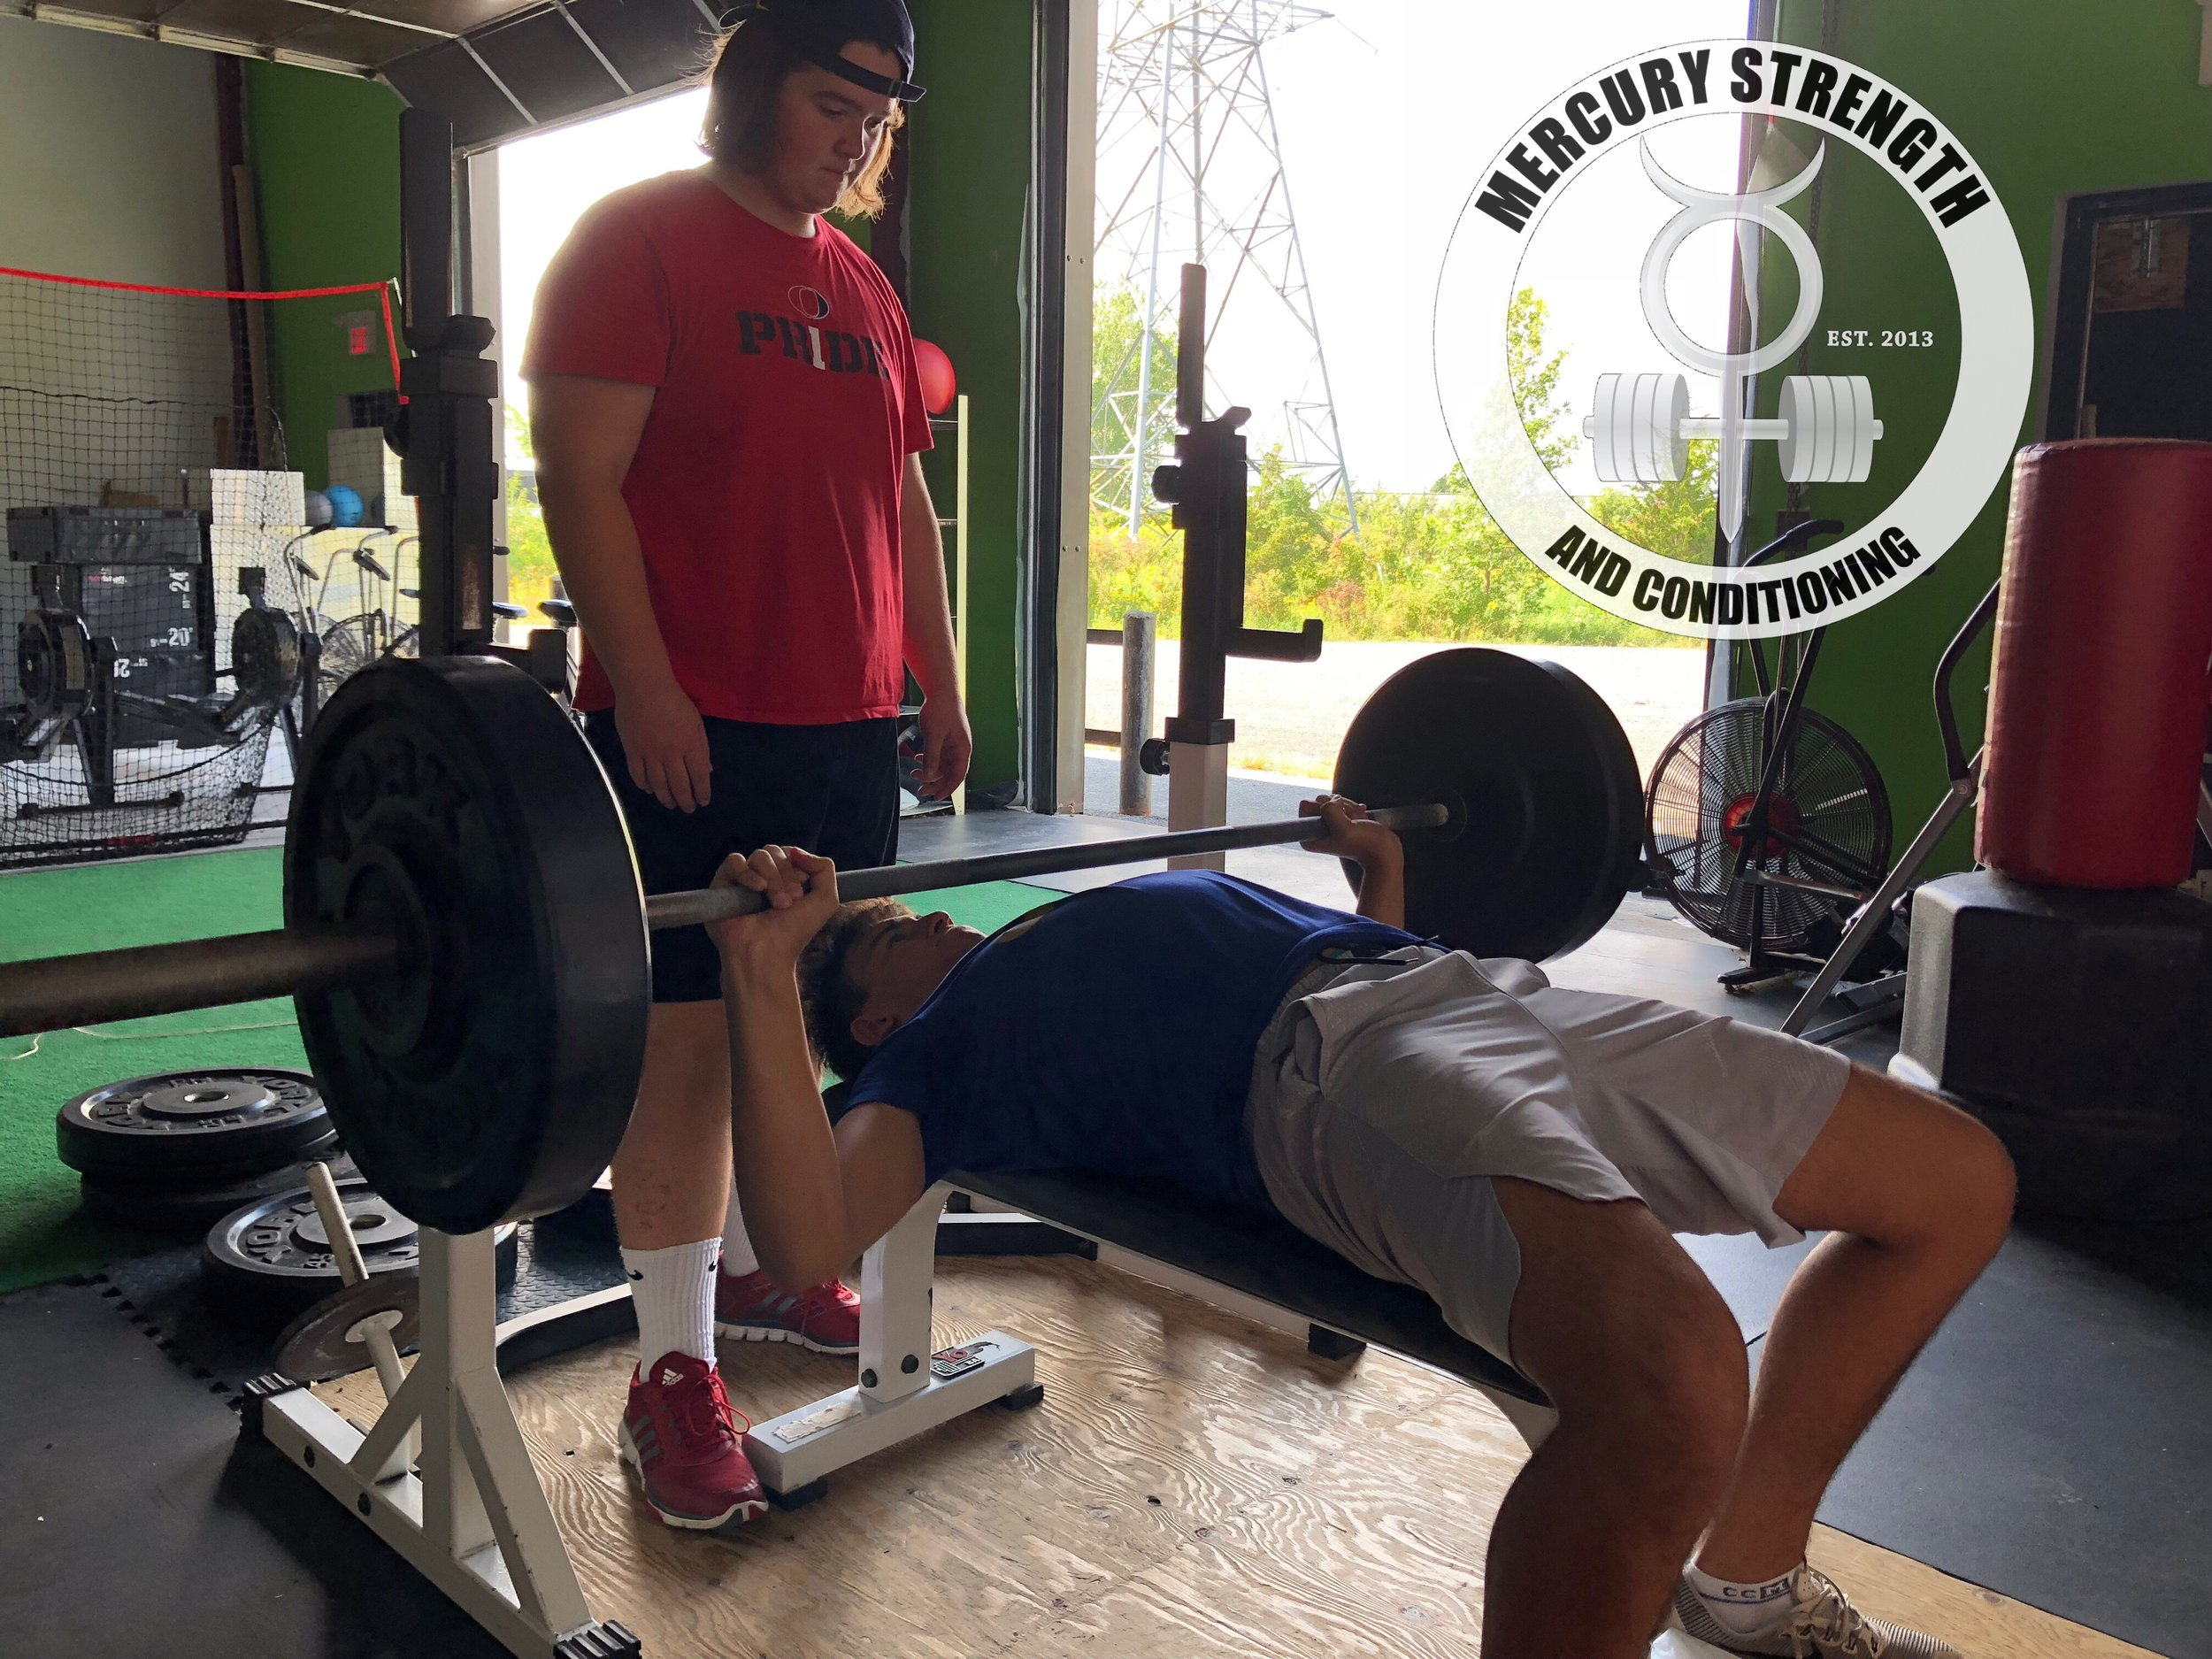 Gym-powerlifting-Olympic lifting-fitness-personal training-training-bootcamp-crossfit-kingston-kingston gym-kids-mercury-strength-conditioning-athlete-bench press